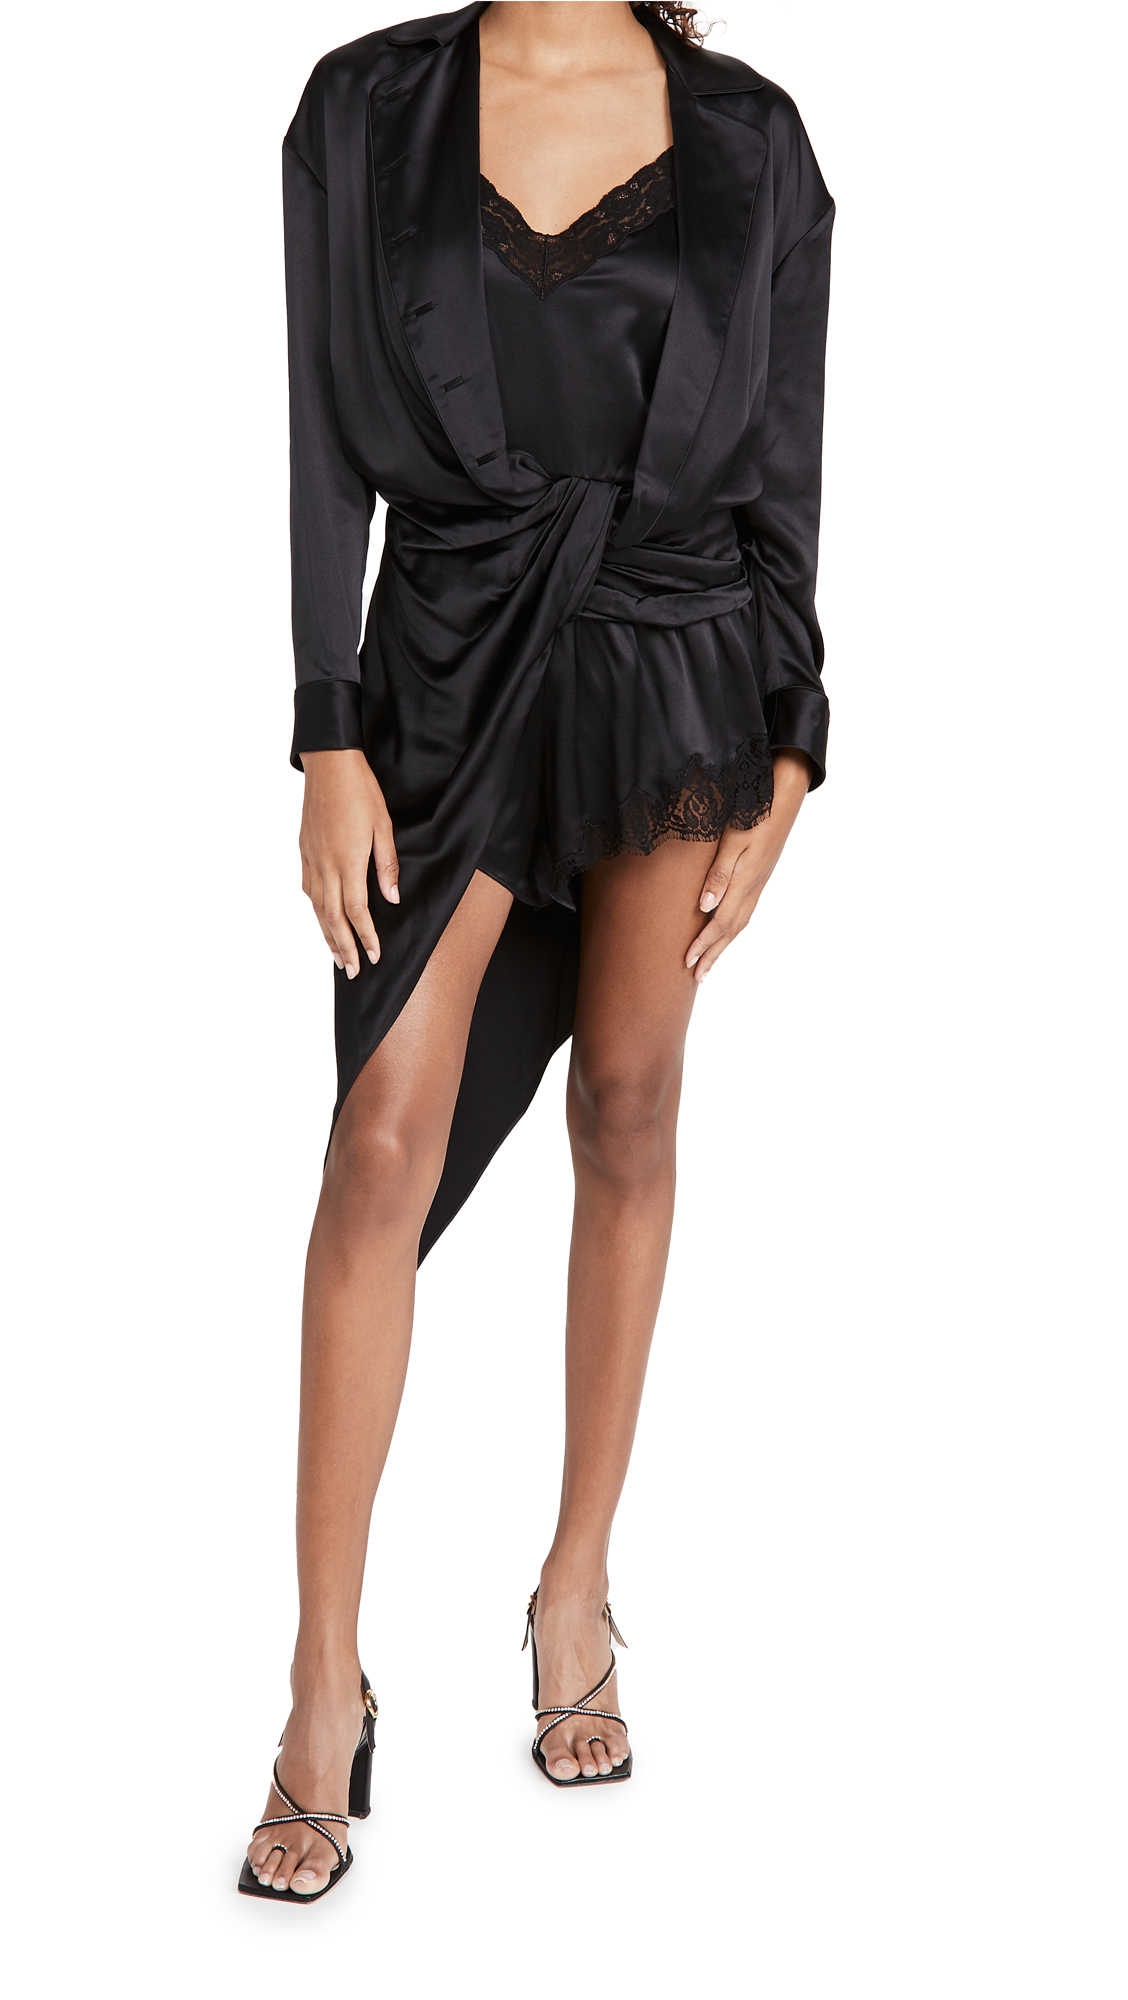 Alexander Wang Draped PJ Slip Dress Hybrid with Lace